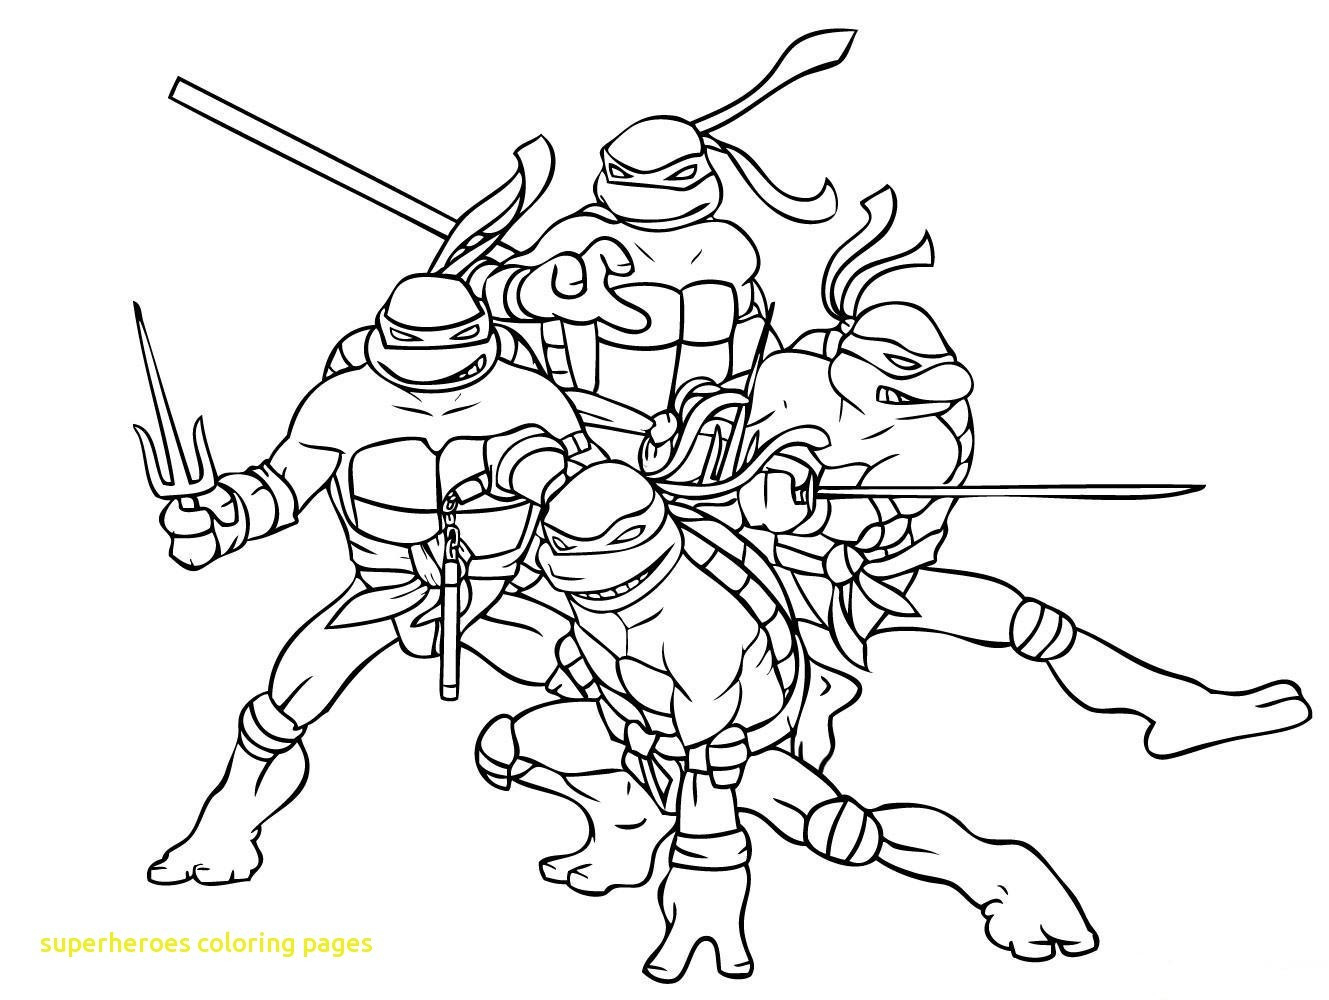 Superhero Coloring Pages - Coloring And Drawing